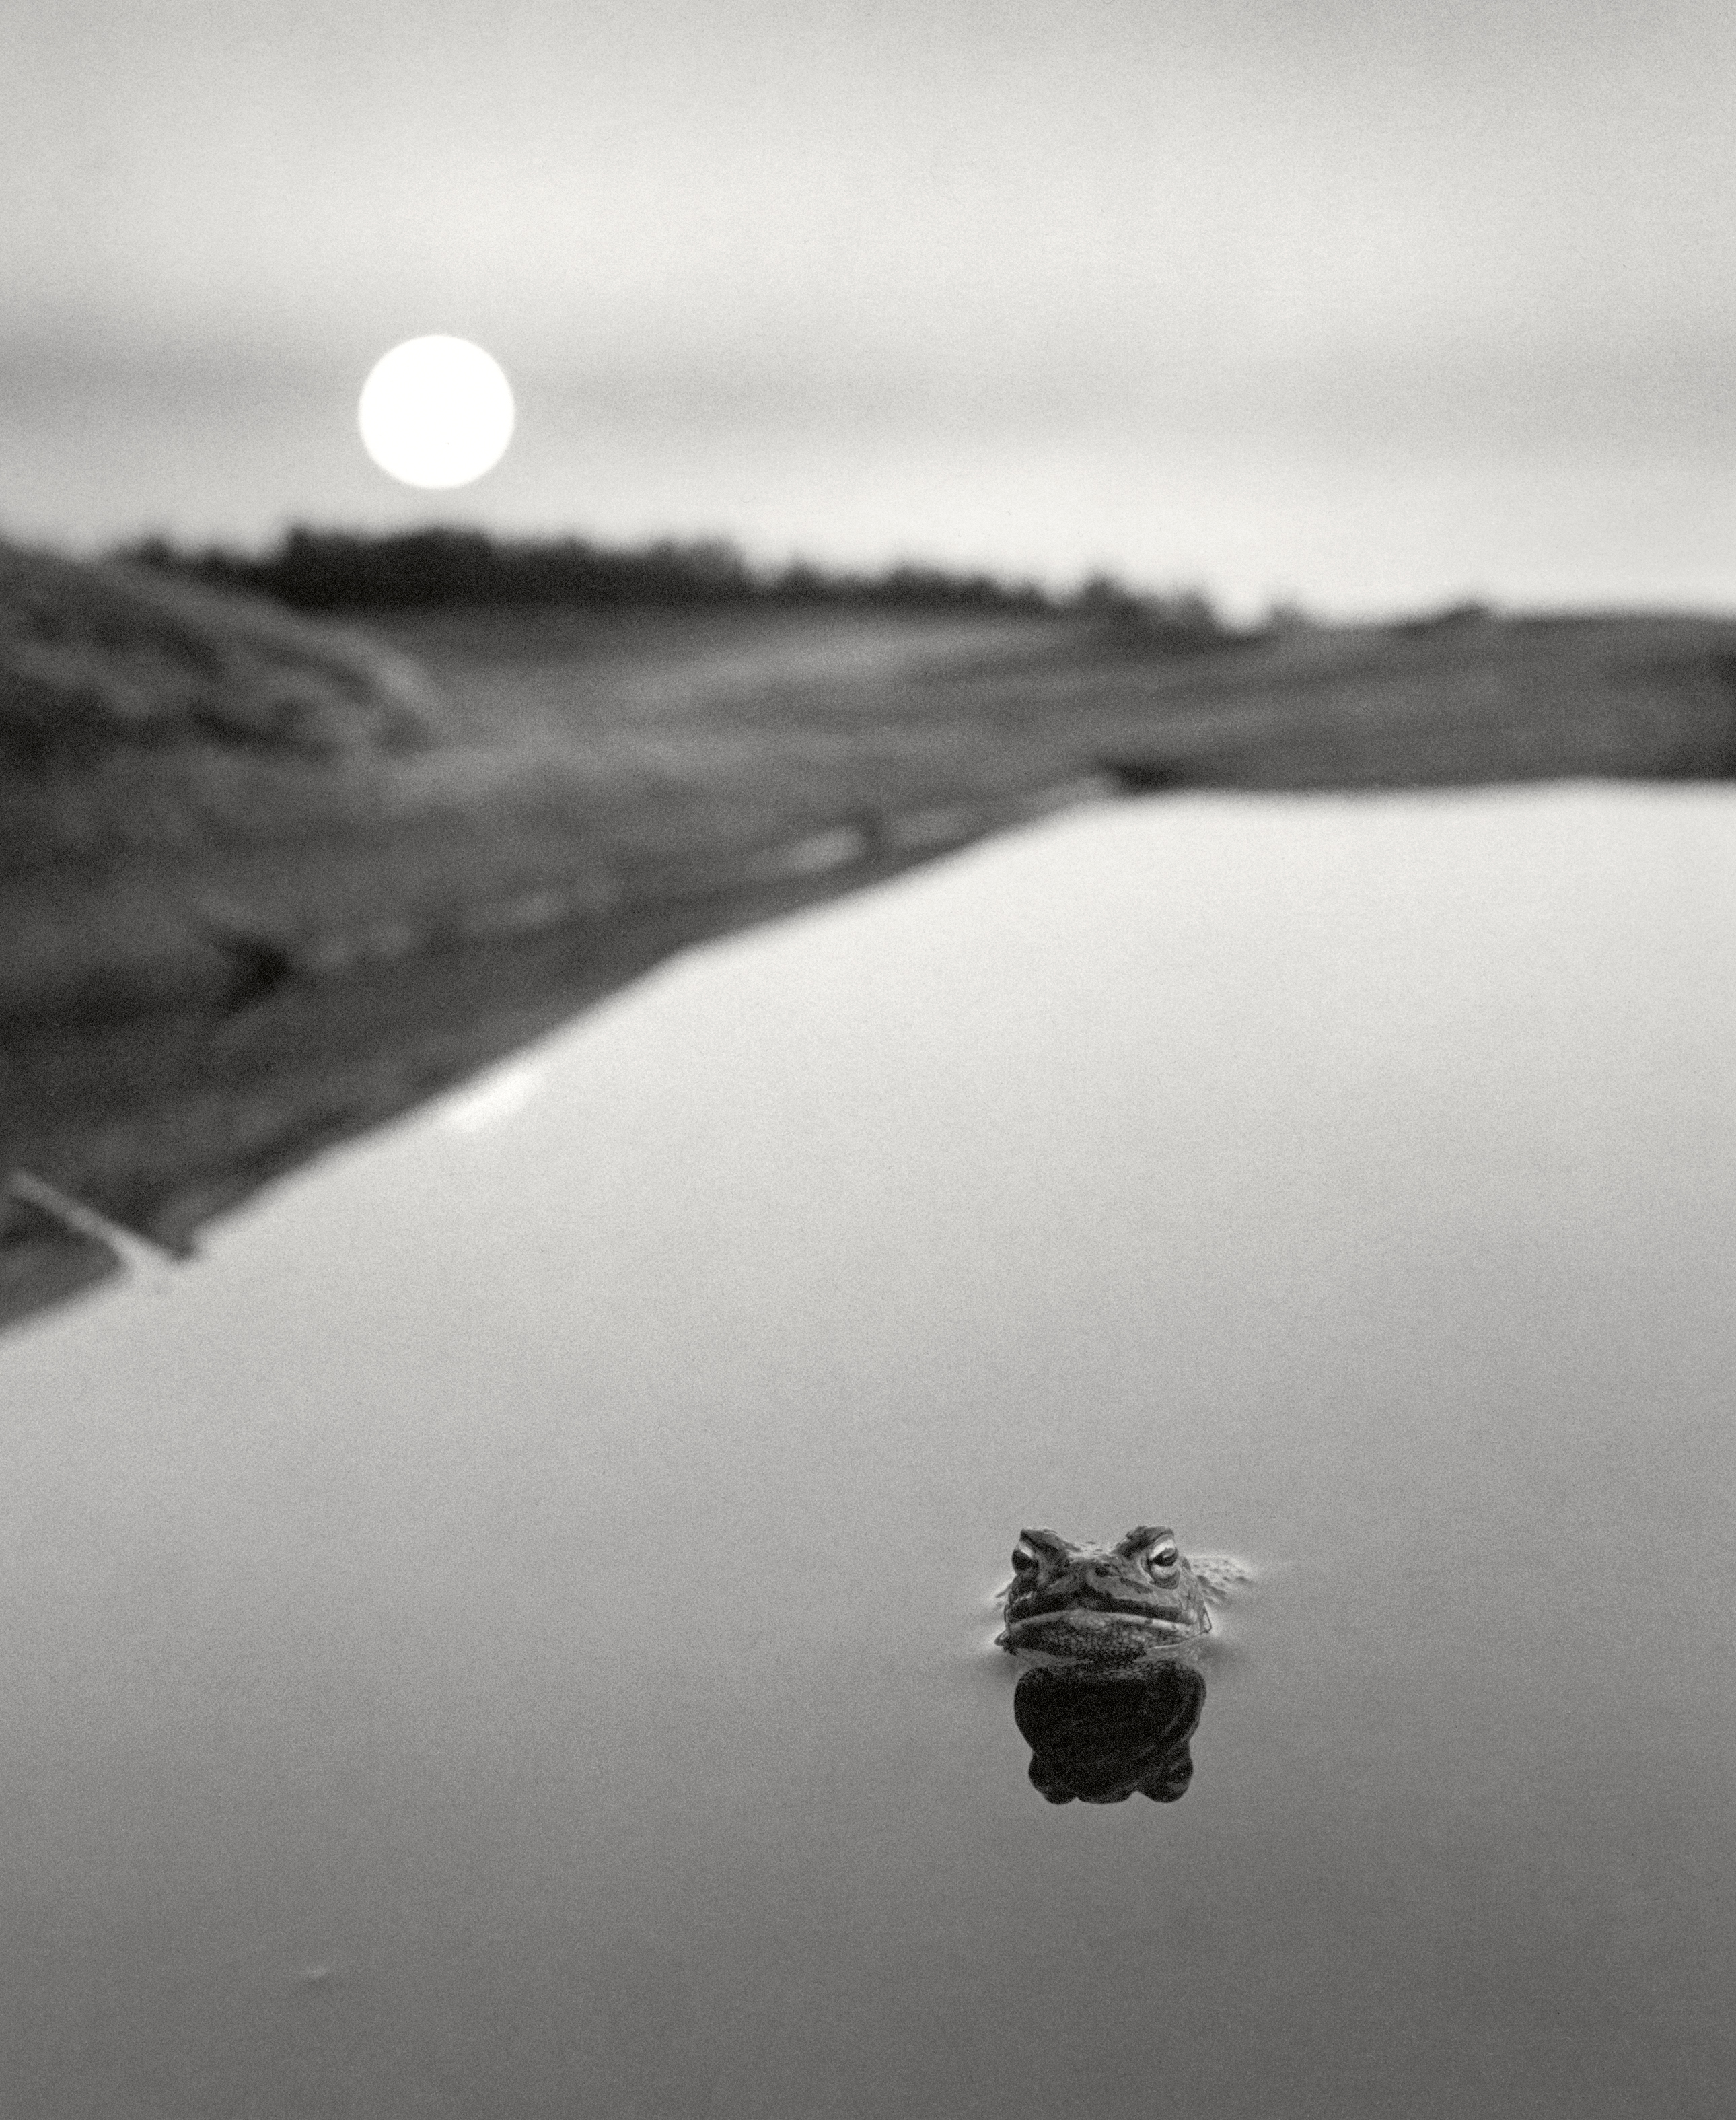 Frog in water, 1974